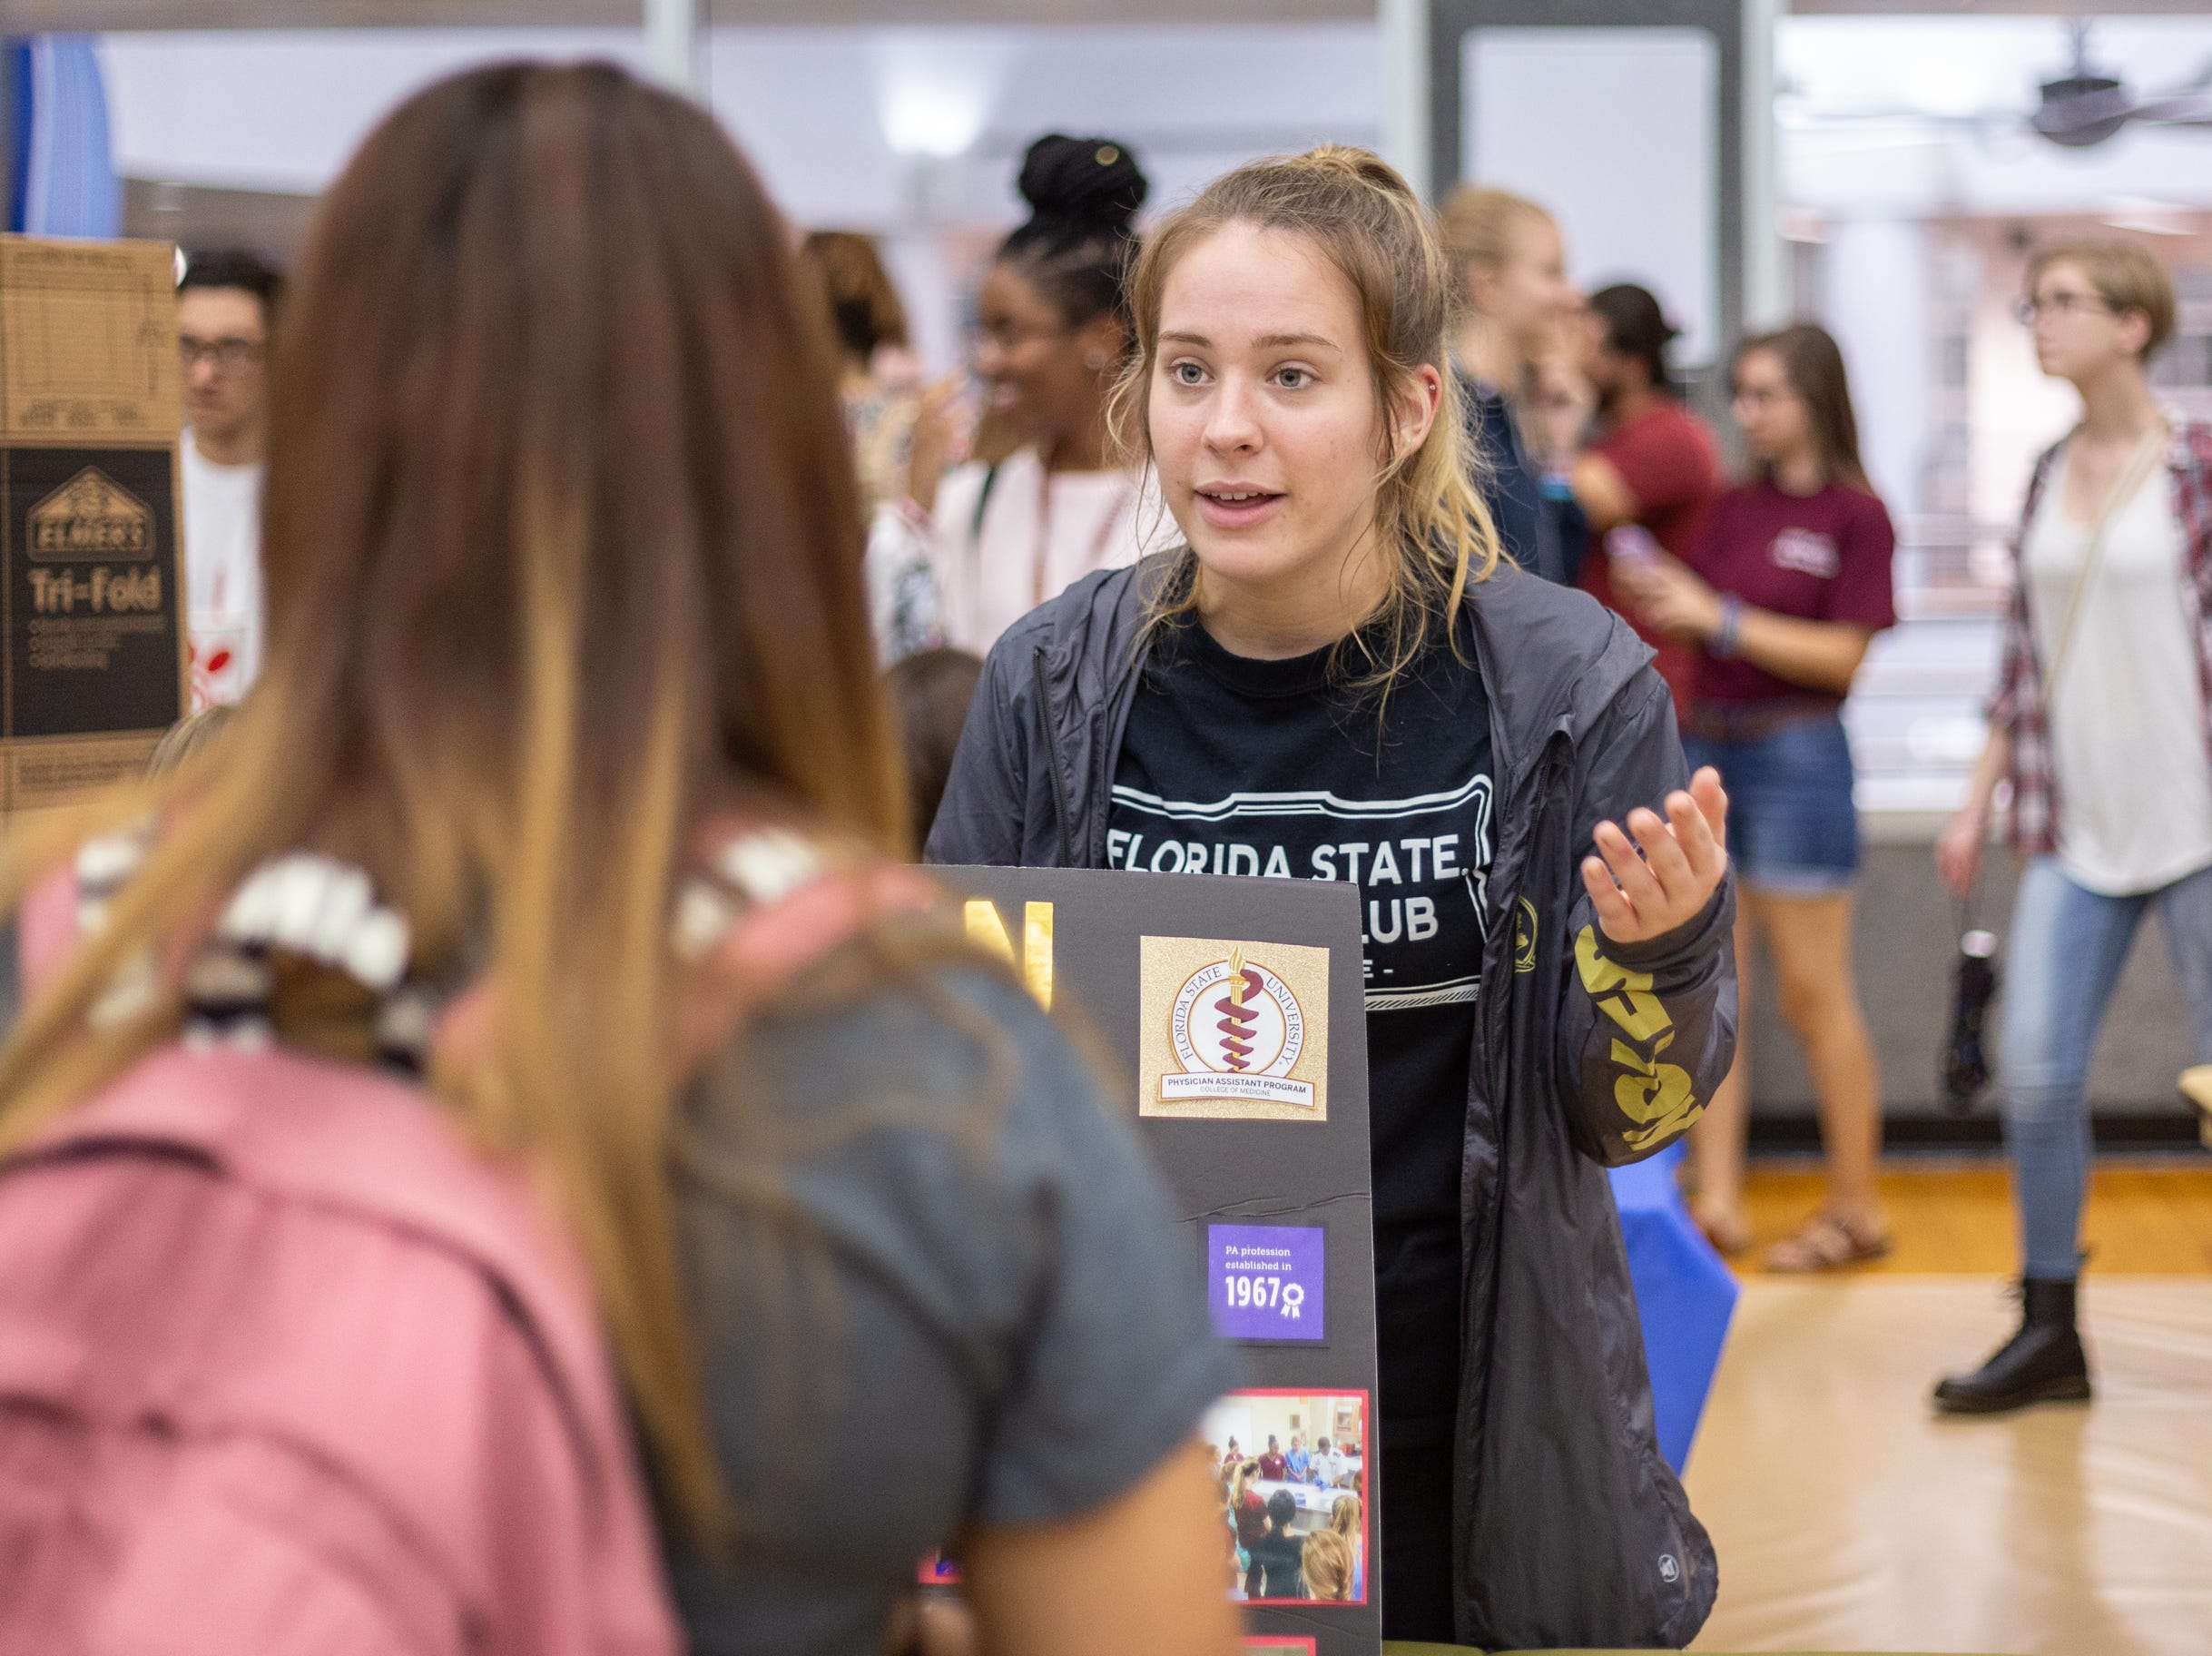 Monica Rowe (right), shares the invaluable experience she gains from her membership in FSU's pre-Physician Assistant Club on Tuesday at FSU's Involvement Fair in the Tully Gymnasium, Tallahassee, FL.